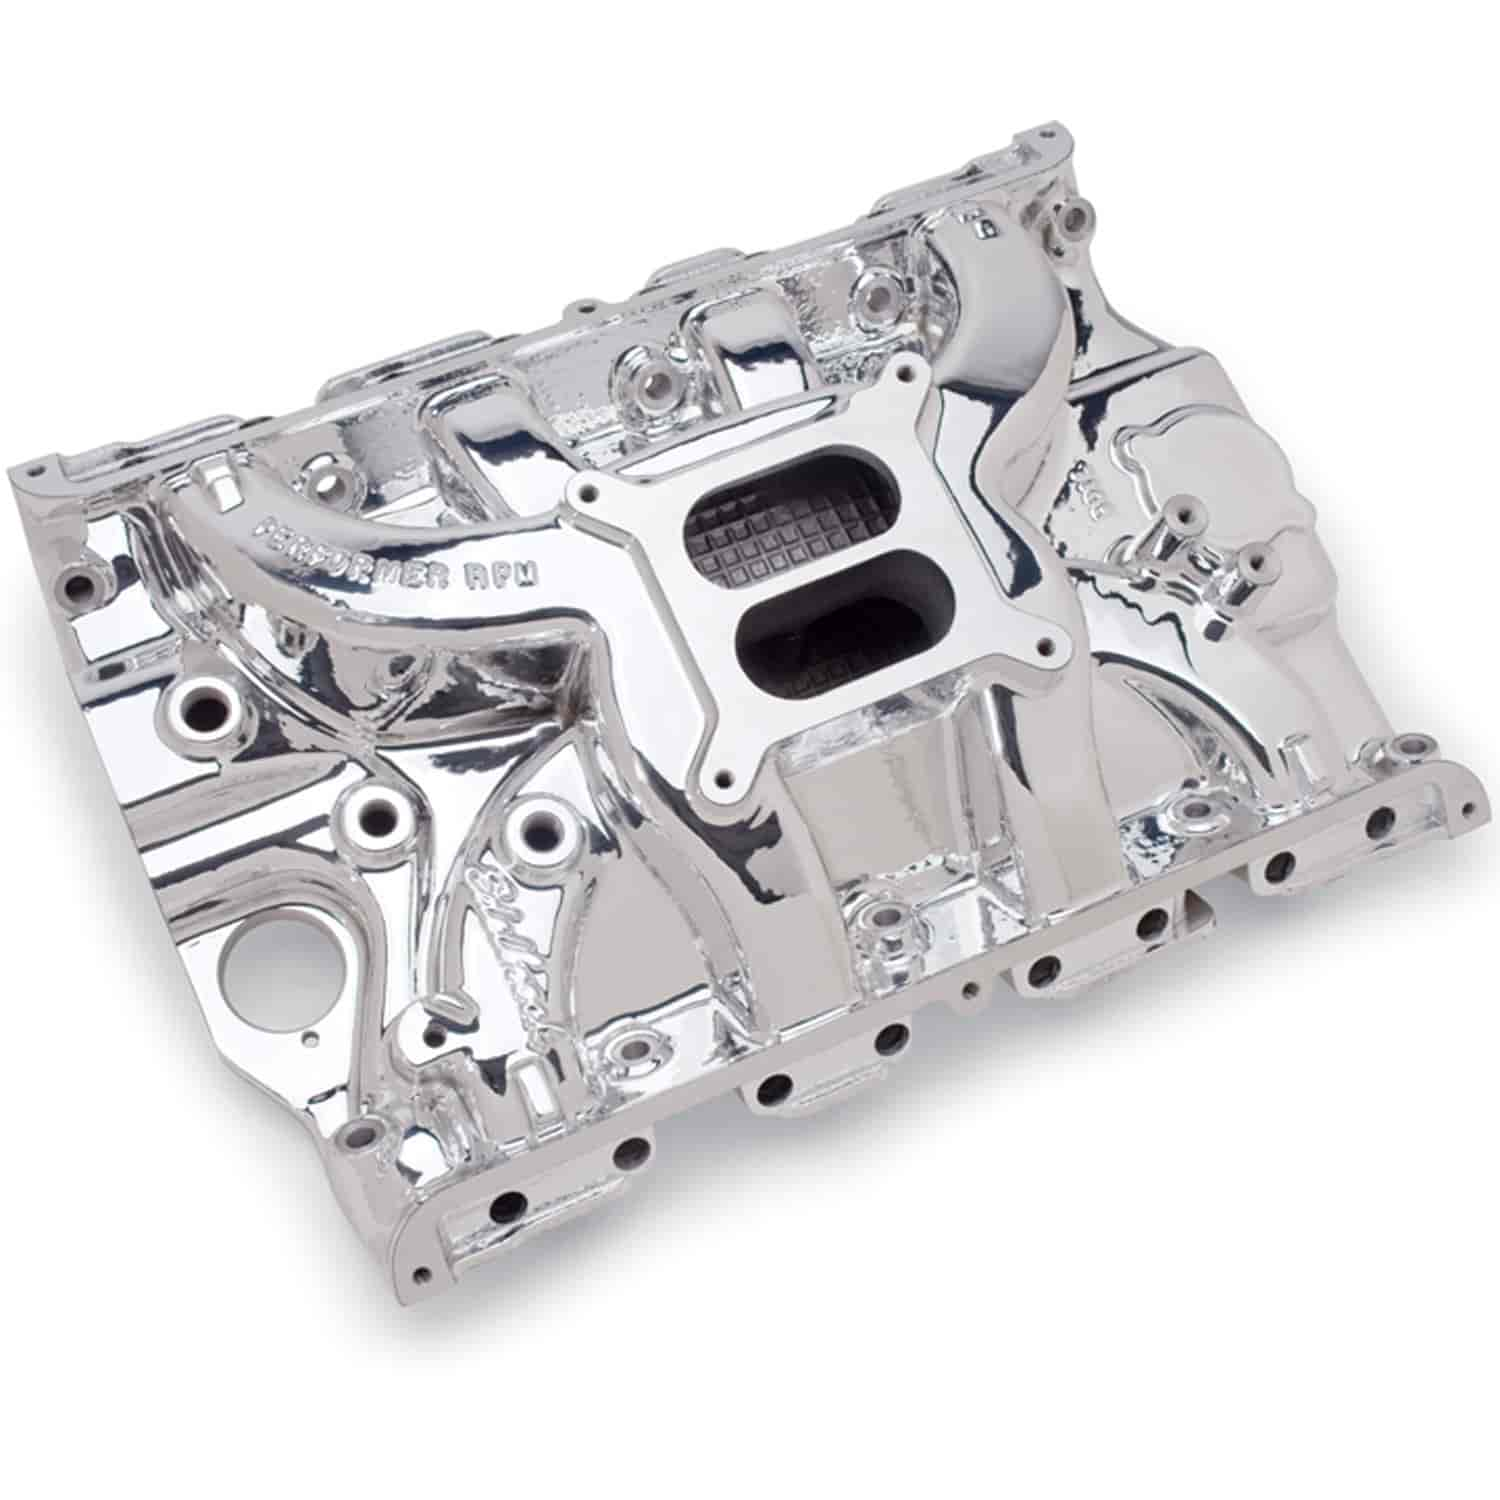 Supercharger Kits For Ford 390: Edelbrock 71054: Performer RPM FE Ford Intake Manifold